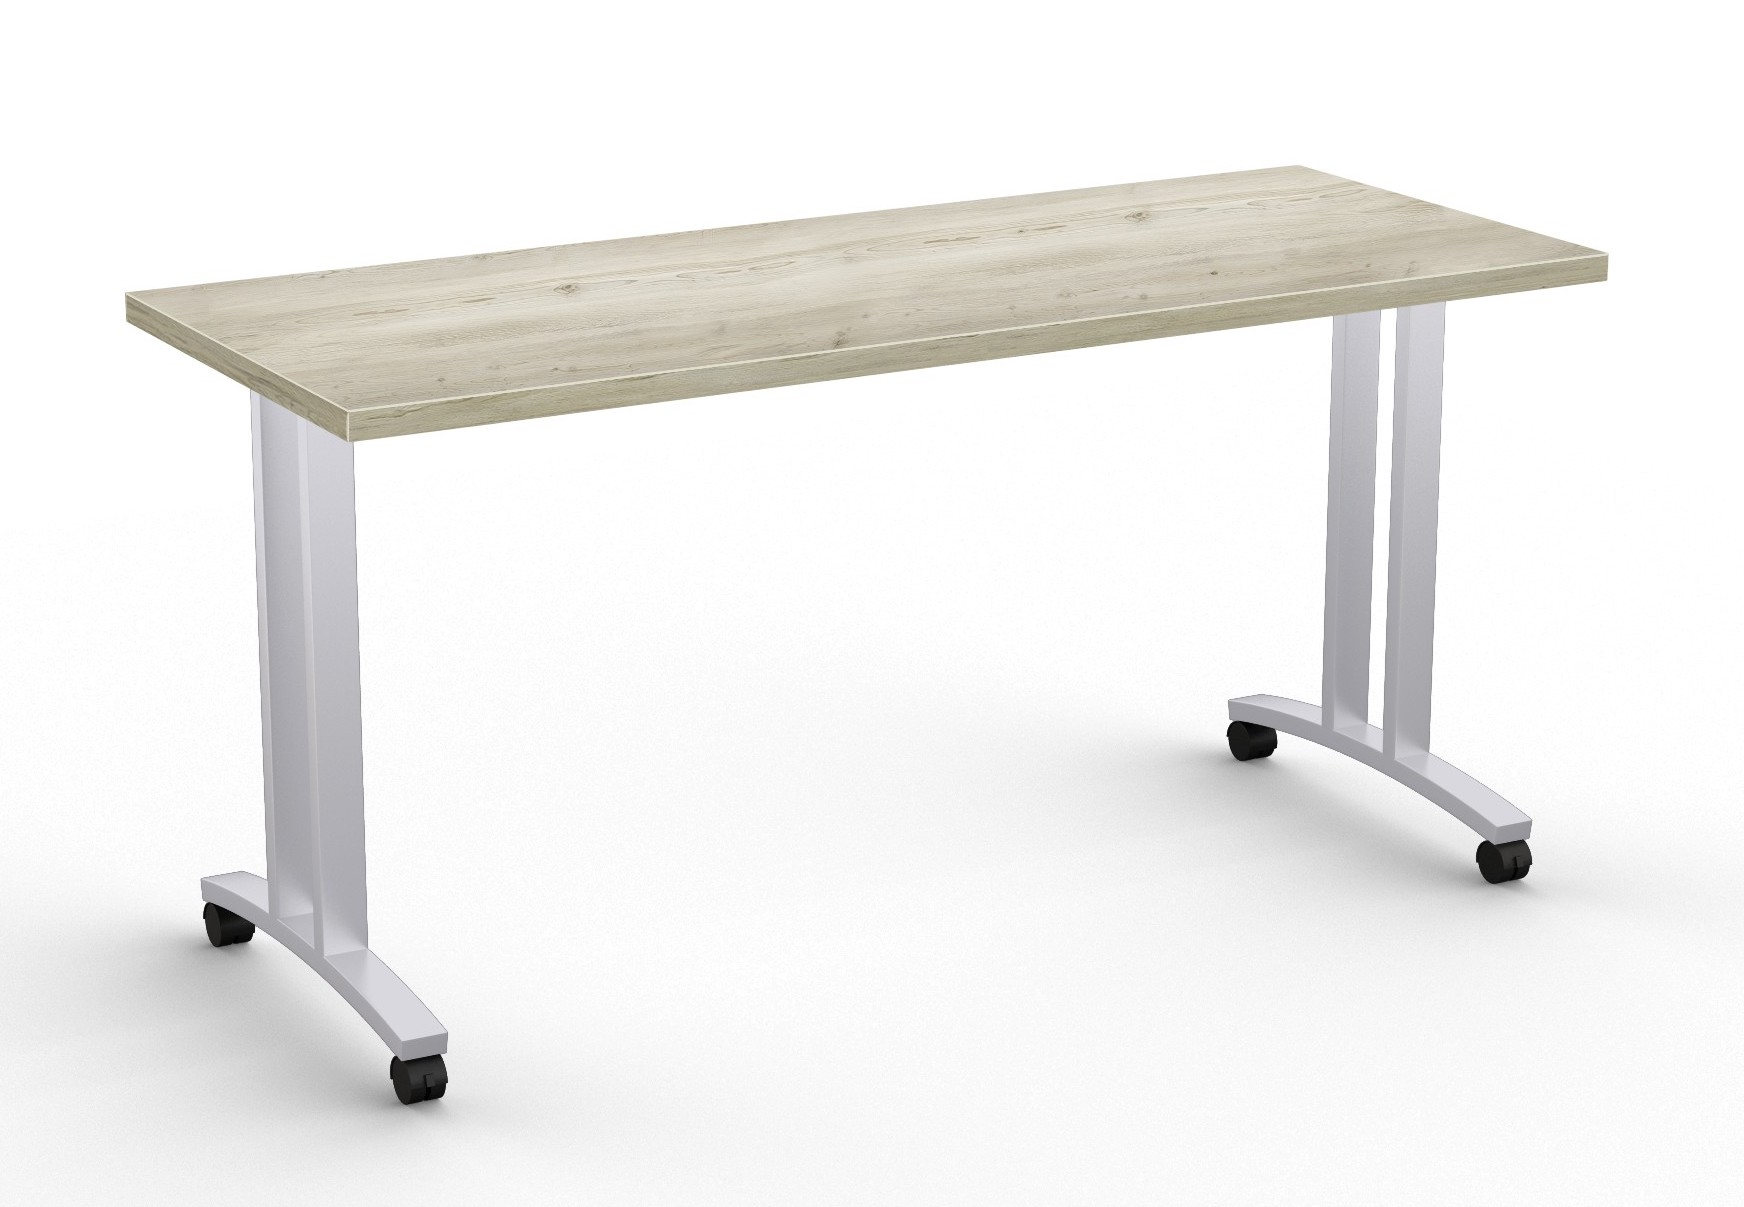 special-t structure t leg training table in aged driftwood